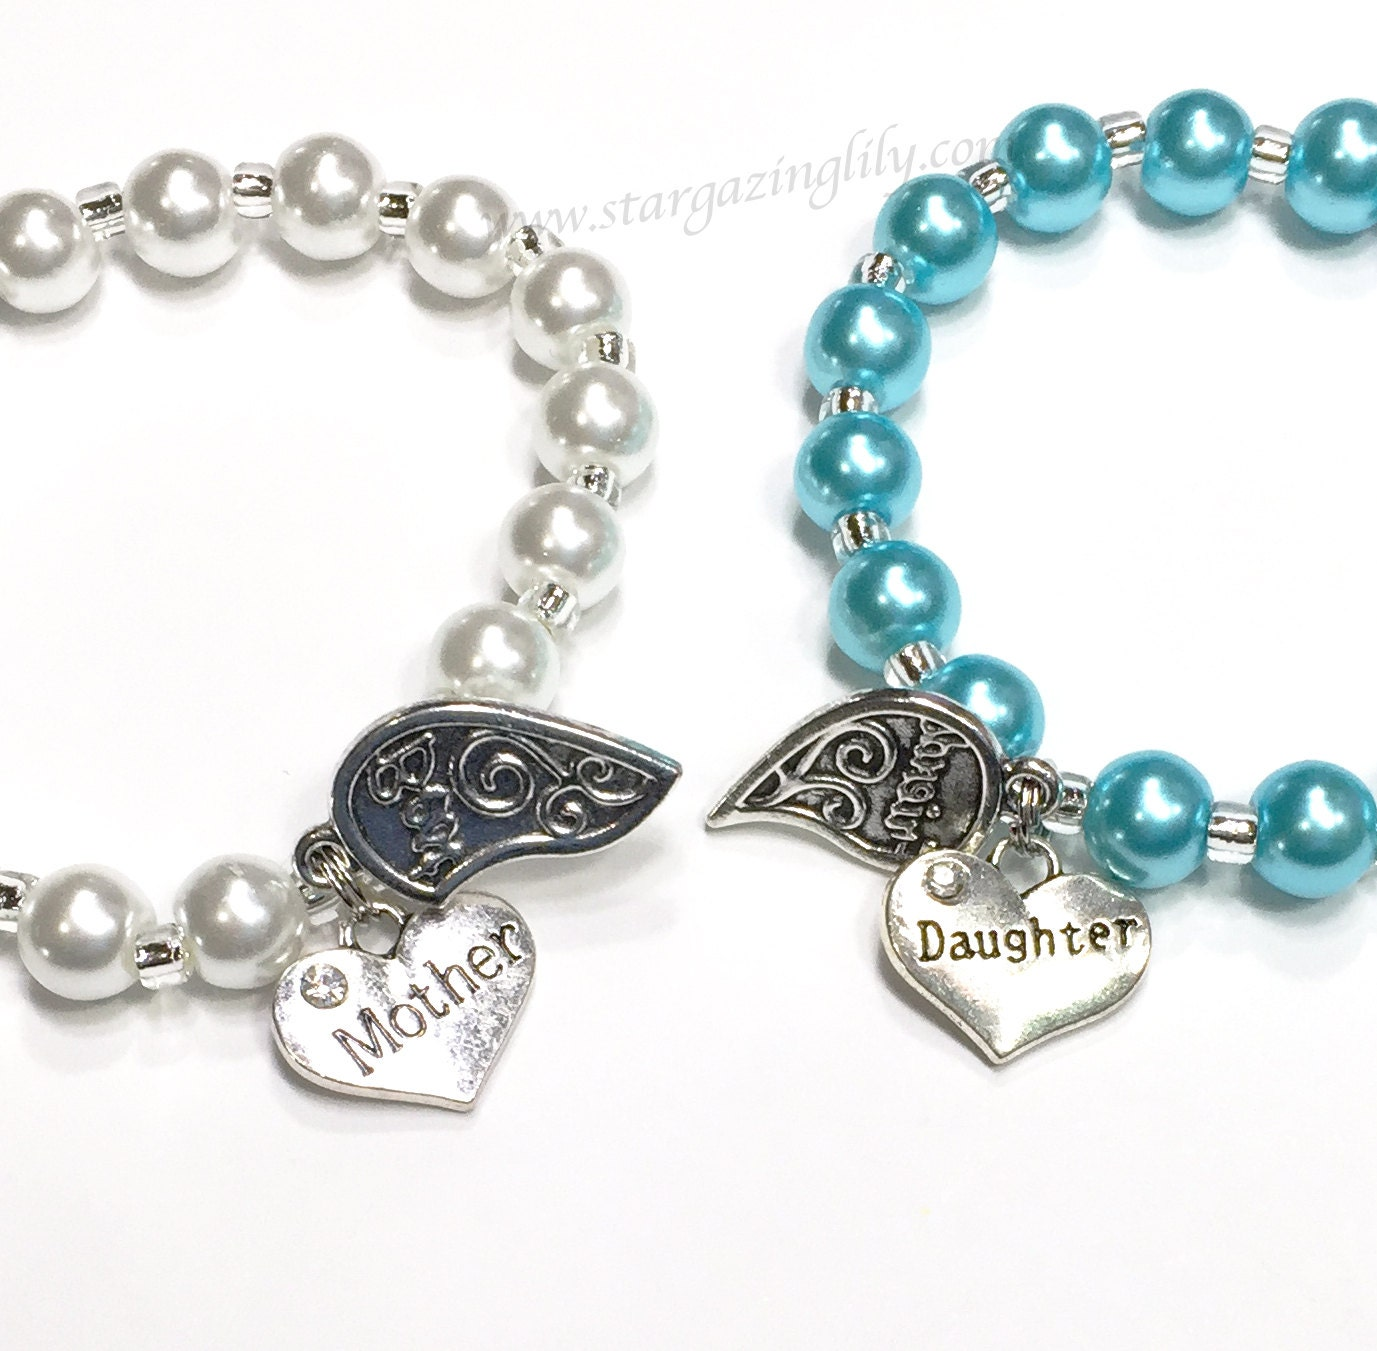 Mothers Charm Bracelet: Mother Daughter Bracelet Set. Best Friend Charm Bracelet Set